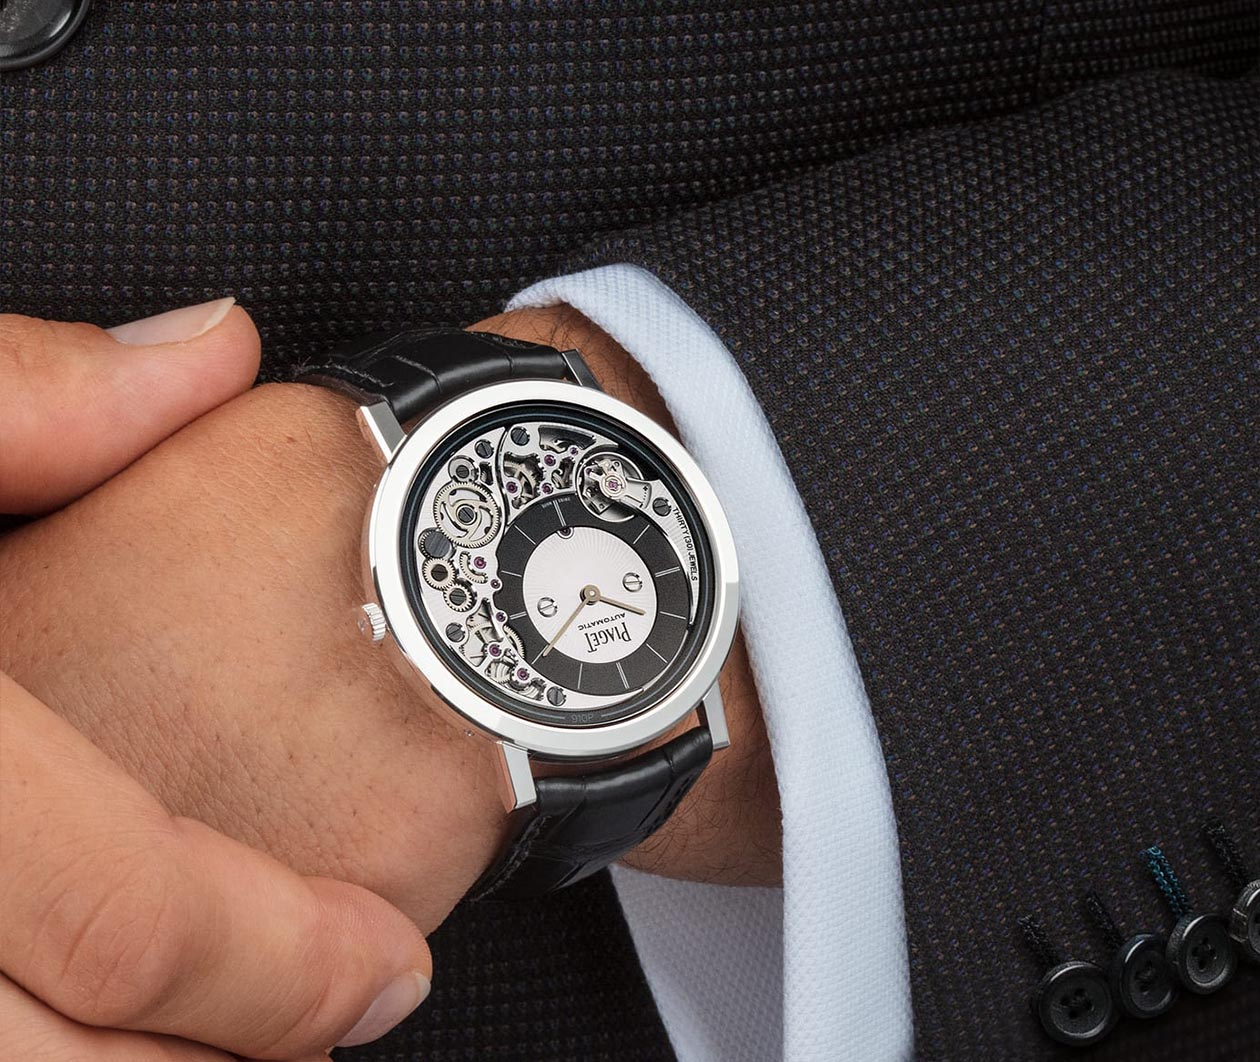 Piaget Altiplano UltimateAutomaticWatch G0A43121 Carousel 2 FINAL